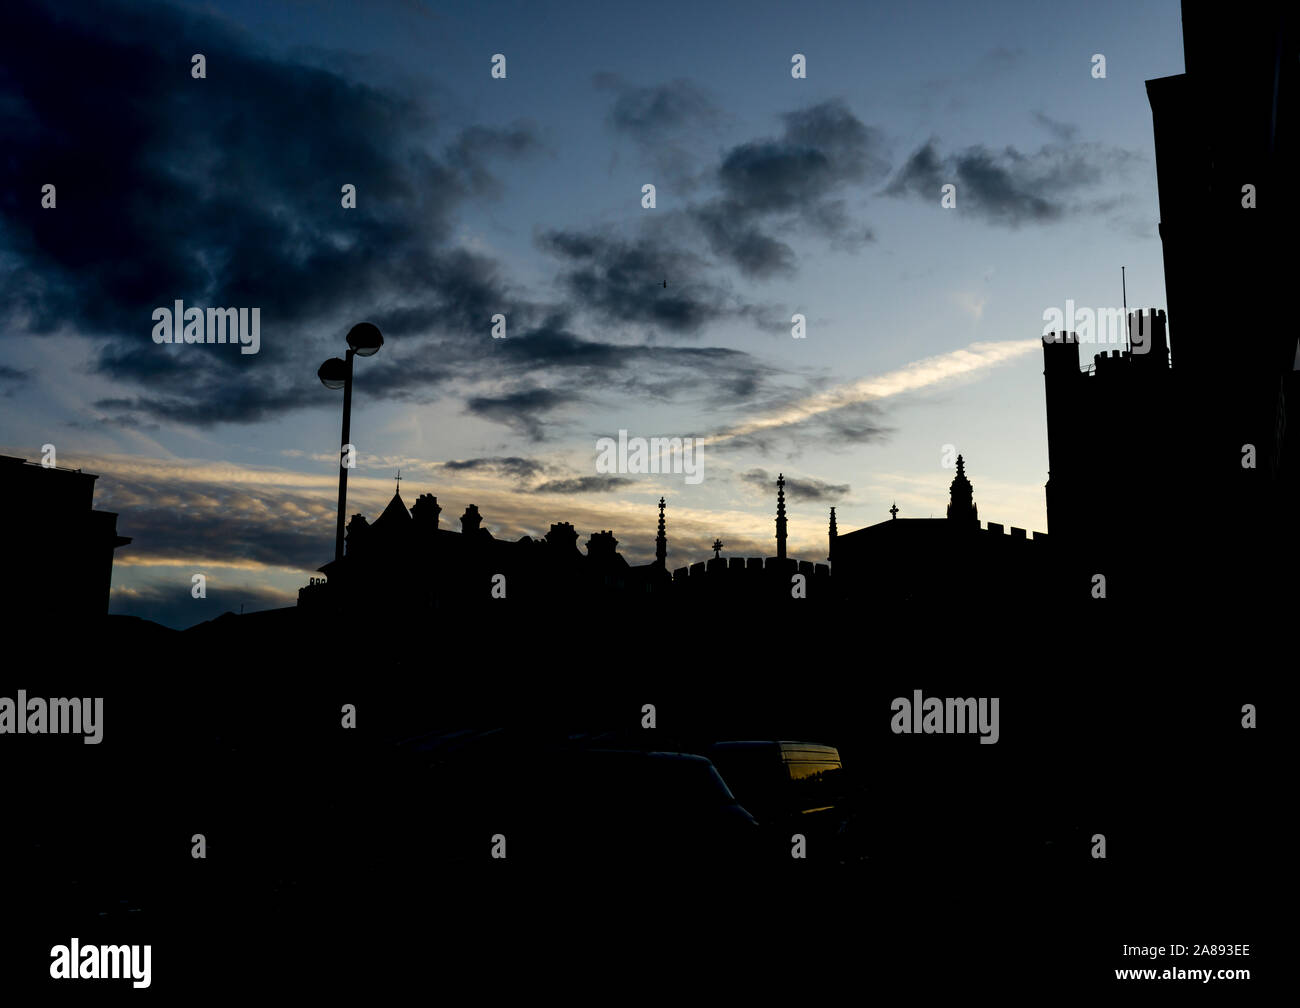 Skyline silhouette at dusk Cambridge city 2019 Stock Photo